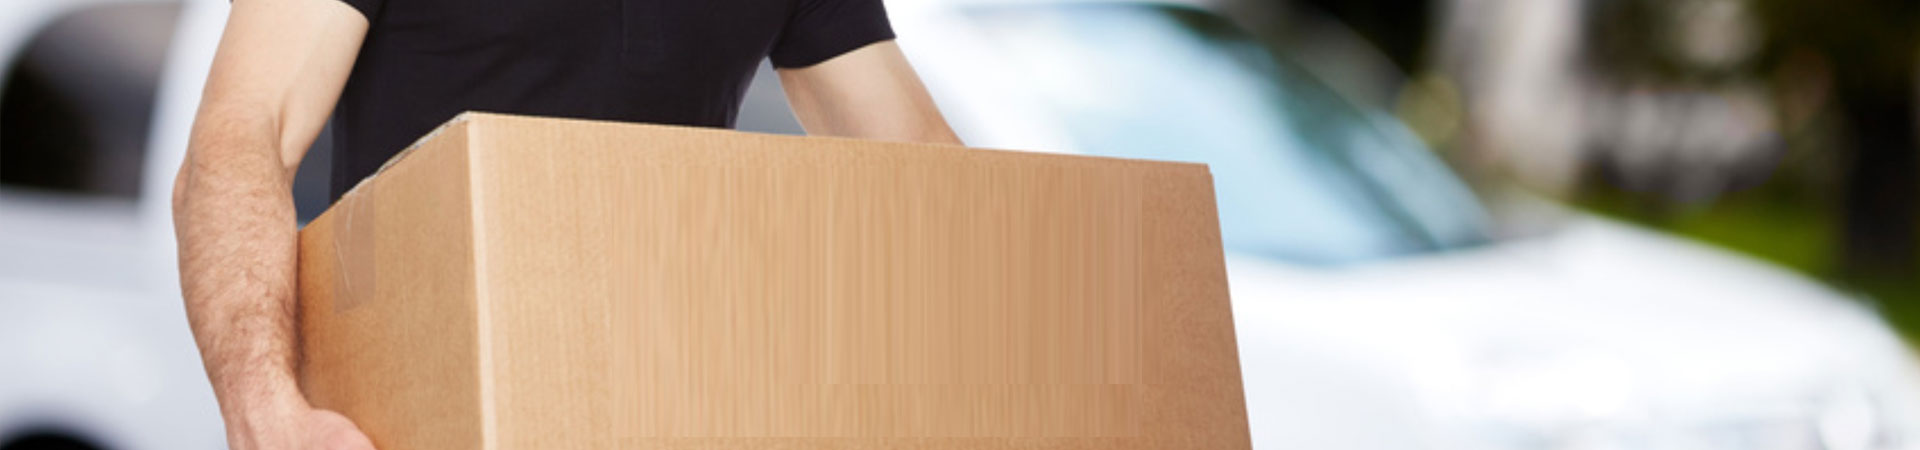 Best UnPacking Services in Qatar.